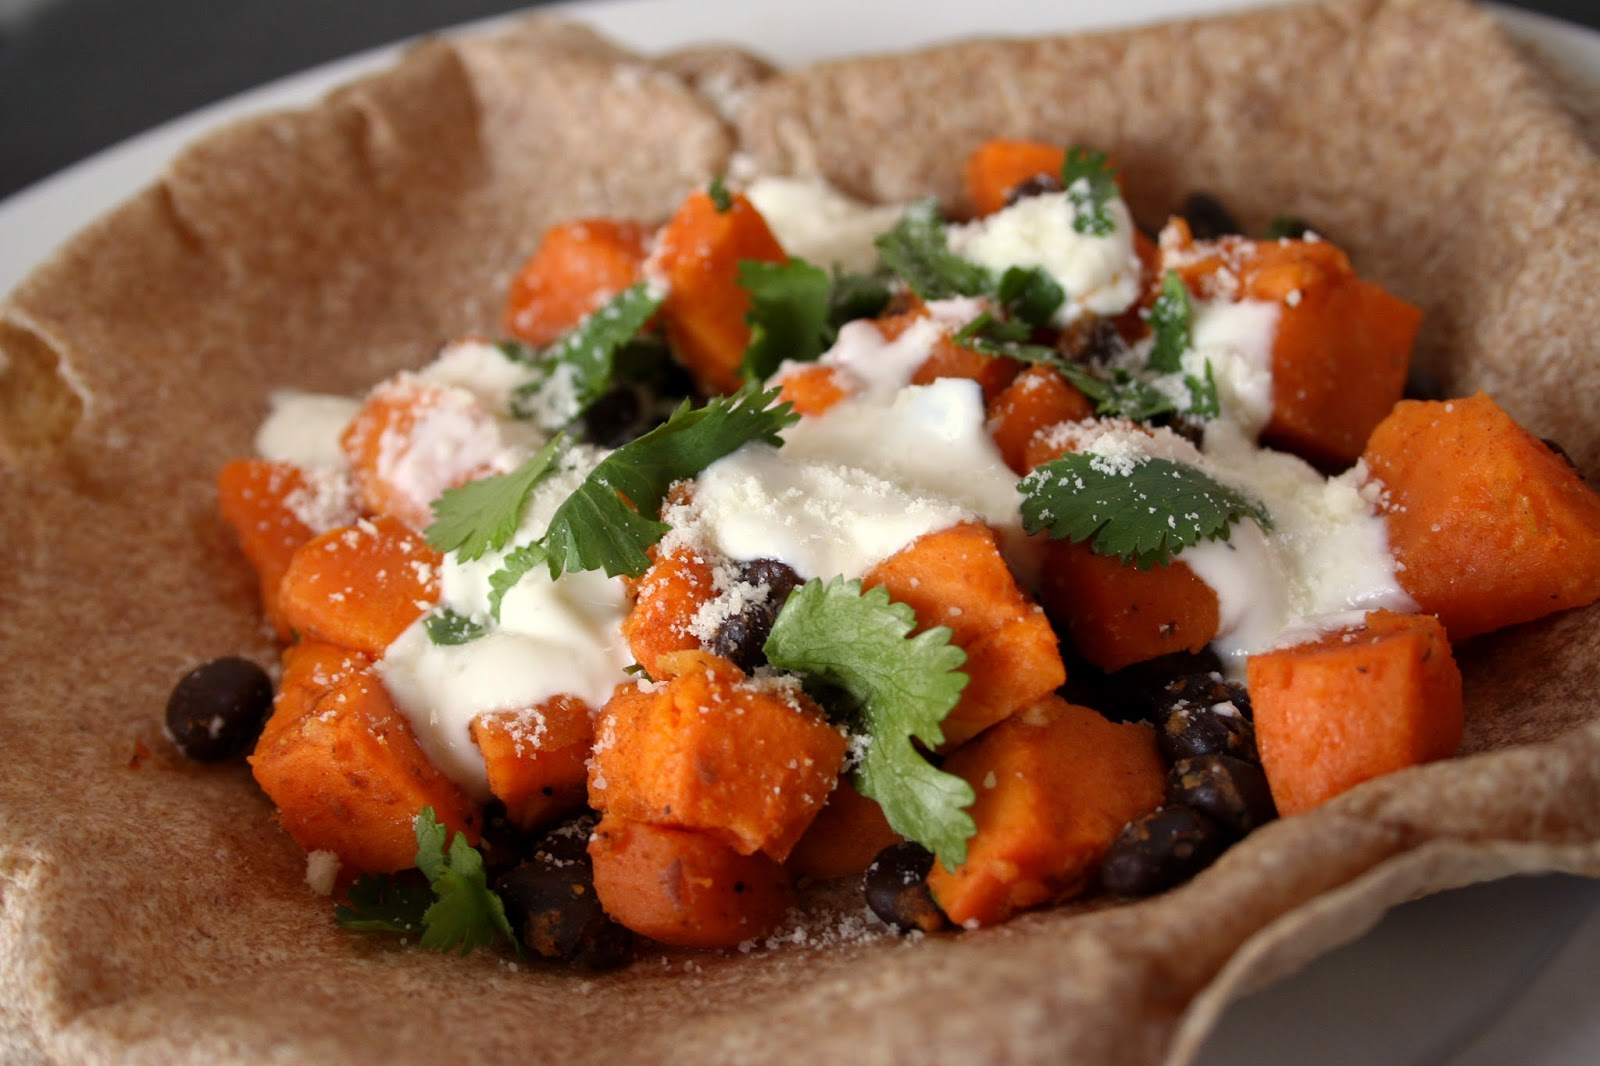 For the Love of Food: Easy Smoky Sweet Potato and Black Bean Tacos